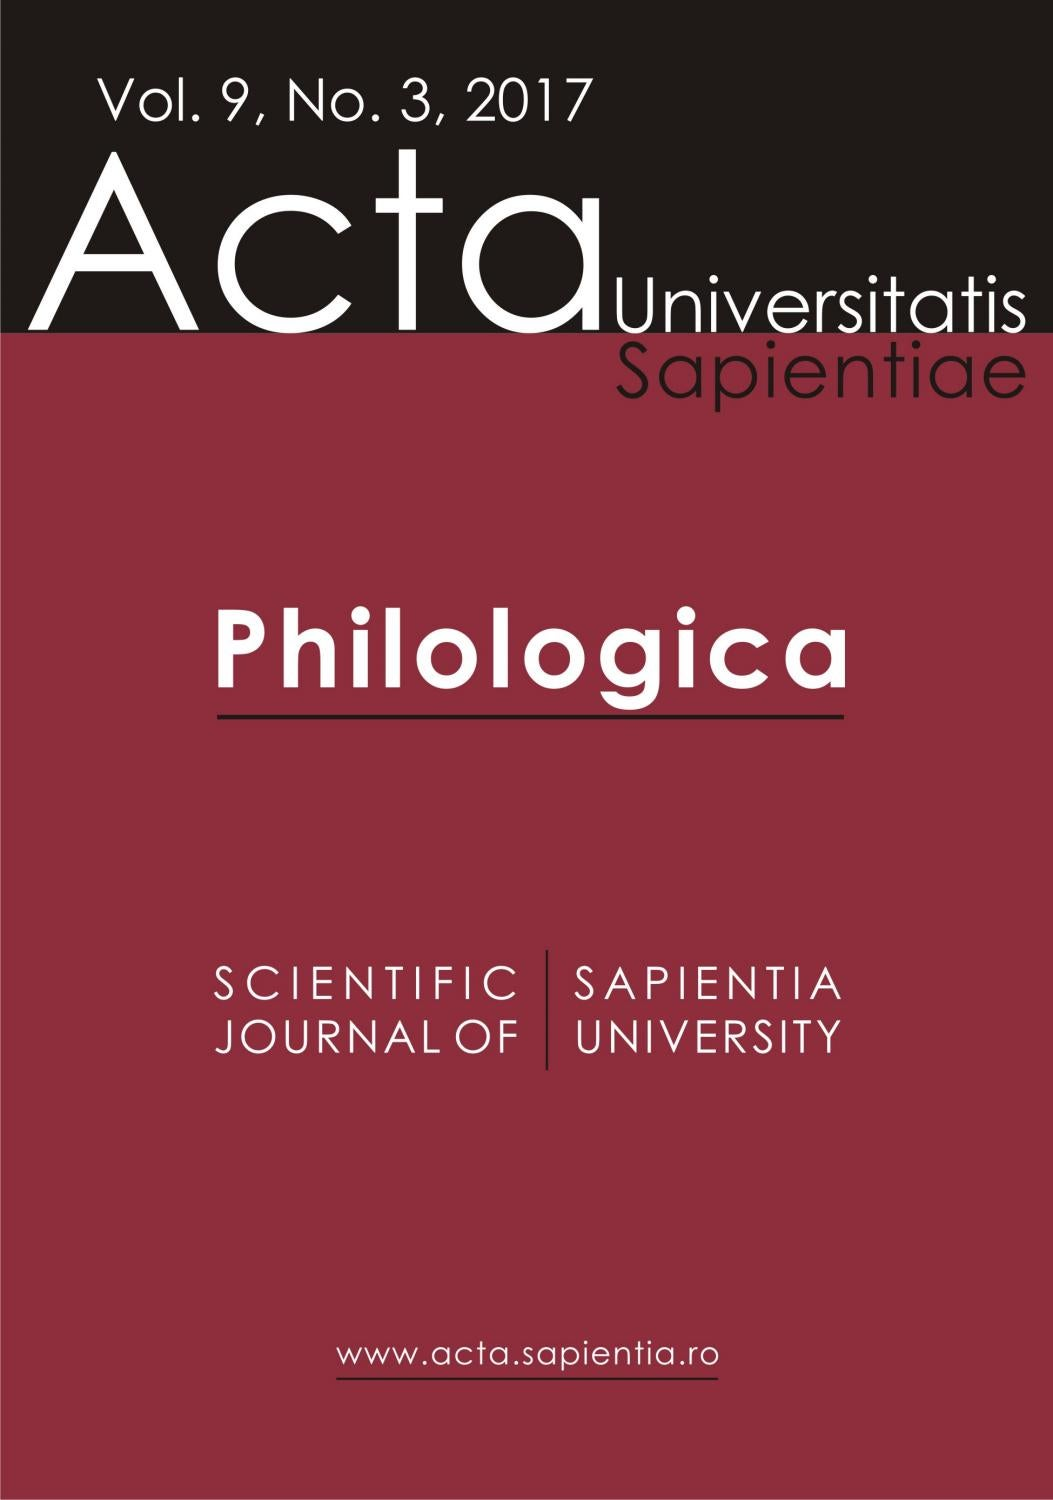 Philologica Vol  9, No  3, 2017 by Acta Universitatis